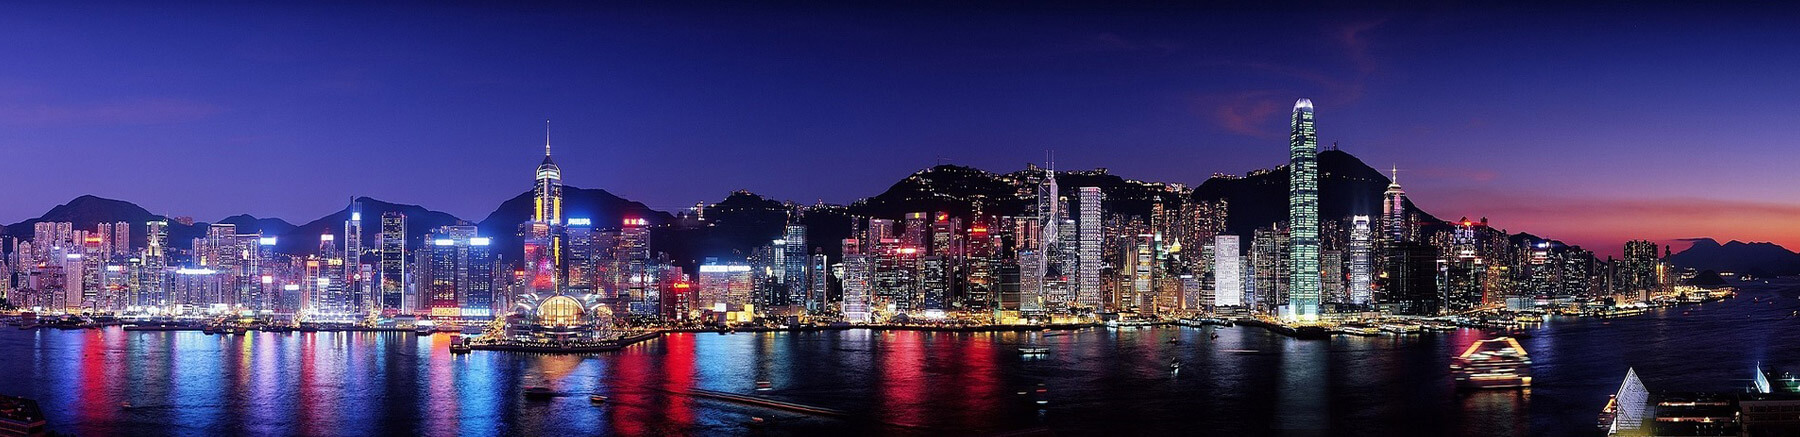 Hong Kong breathtaking panoramic view by night with the city in the foreground